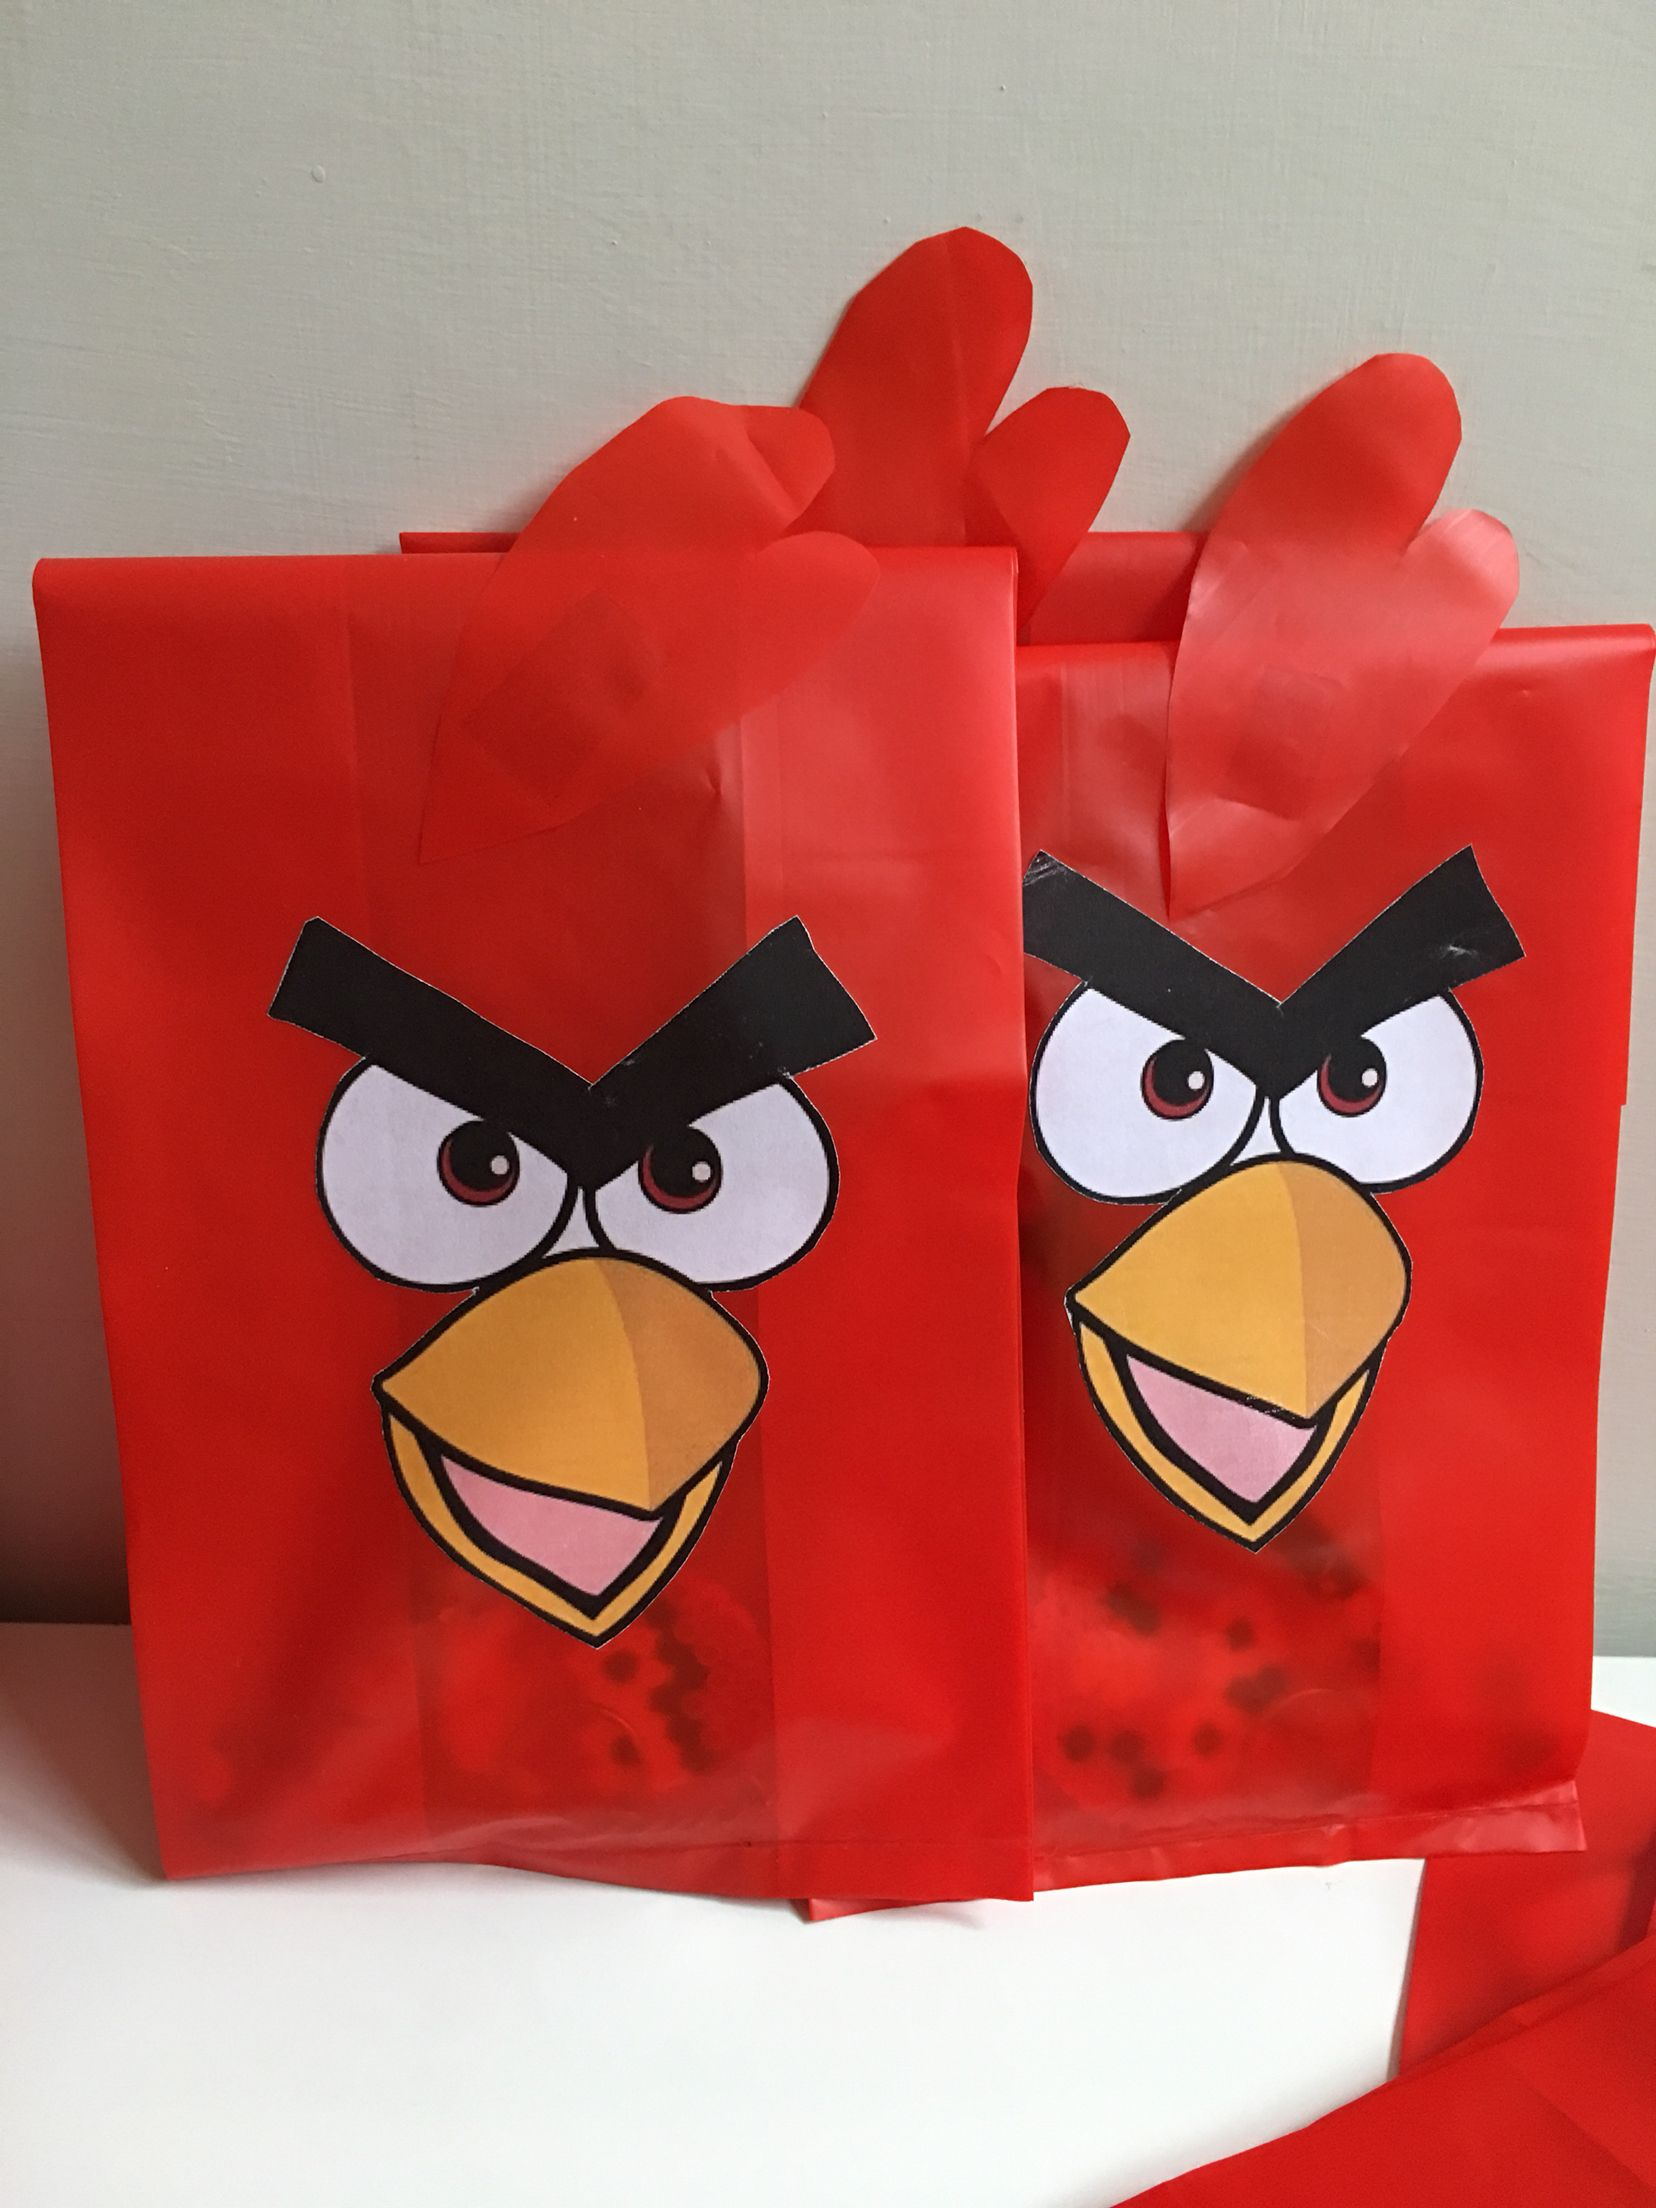 PARTY favor at miki's angrybirday